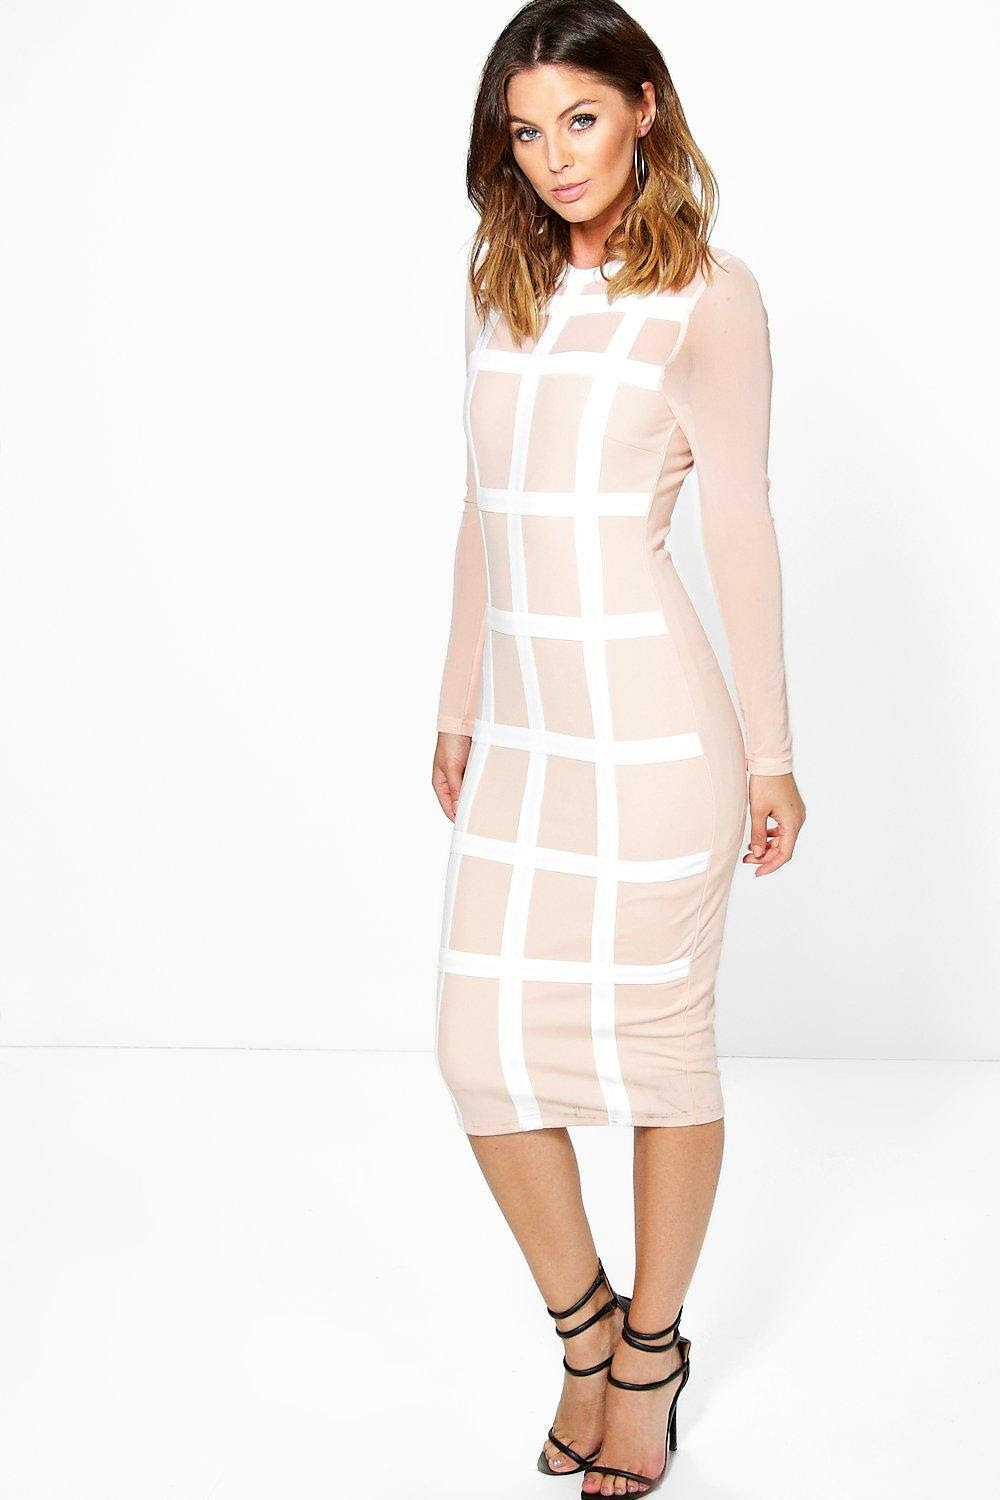 Apparel terms dresses x women ray for bodycon penney picked for